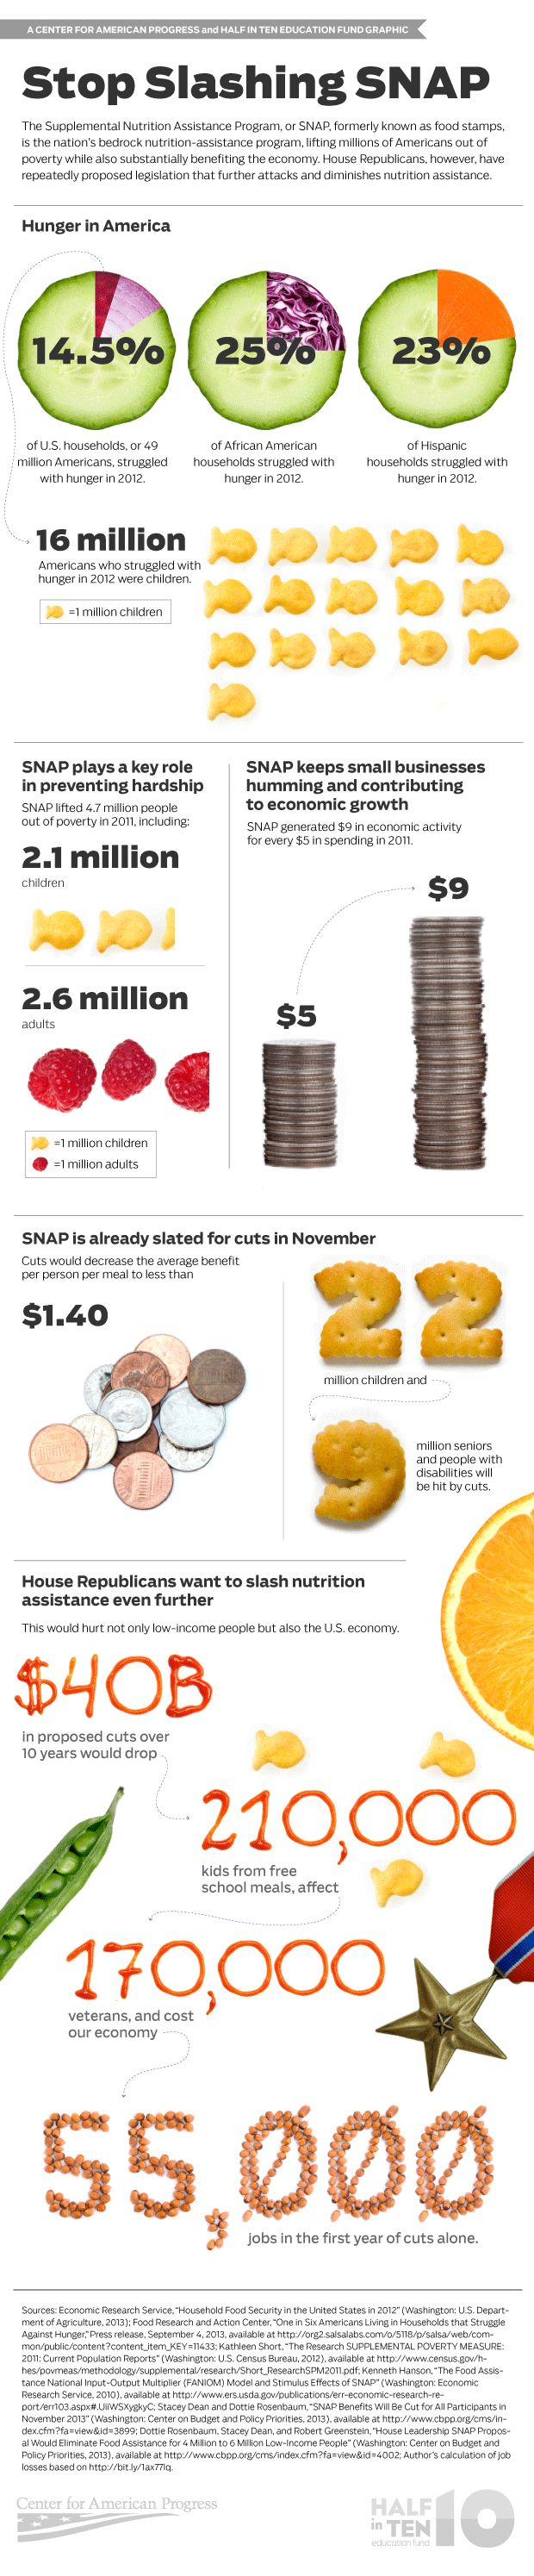 SNAP aka Food Stamps....What it Means, Who it Benefits and More!   SNAPinfographic_2